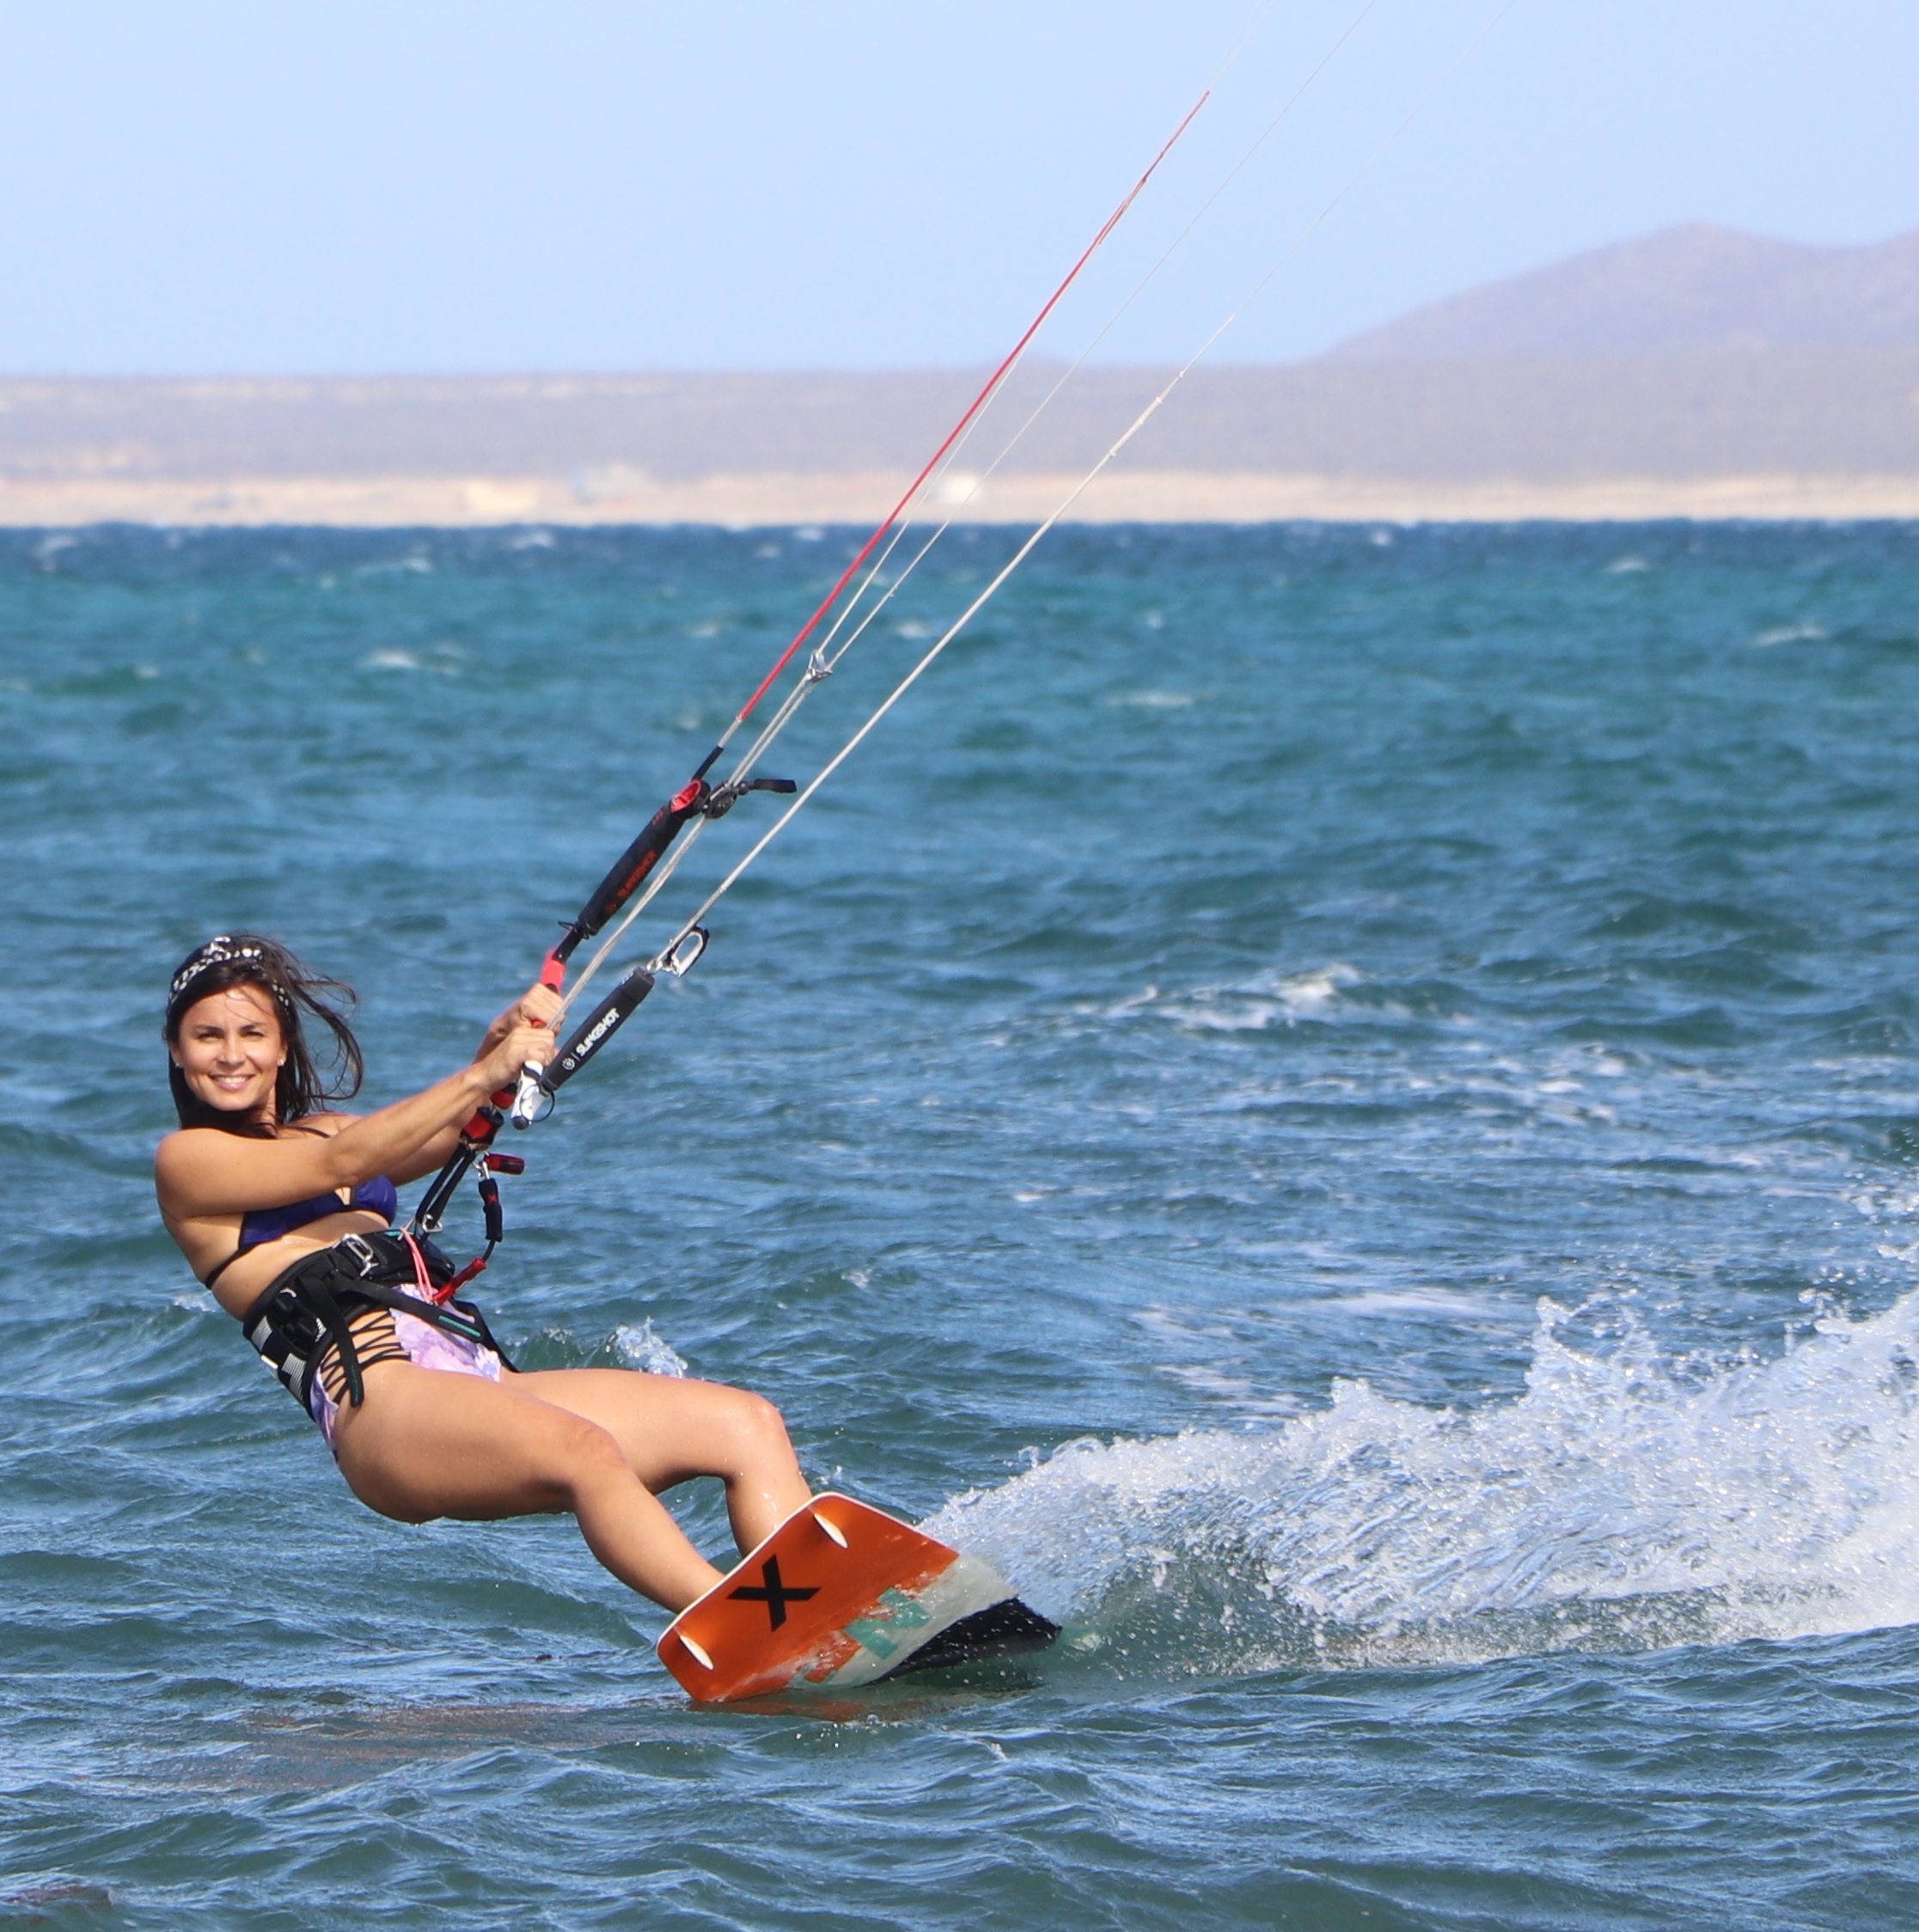 Bikini kiting is the best! - If you do have time to come during this time of the year, it is worth it and you'll realize how lucky you are to be here.